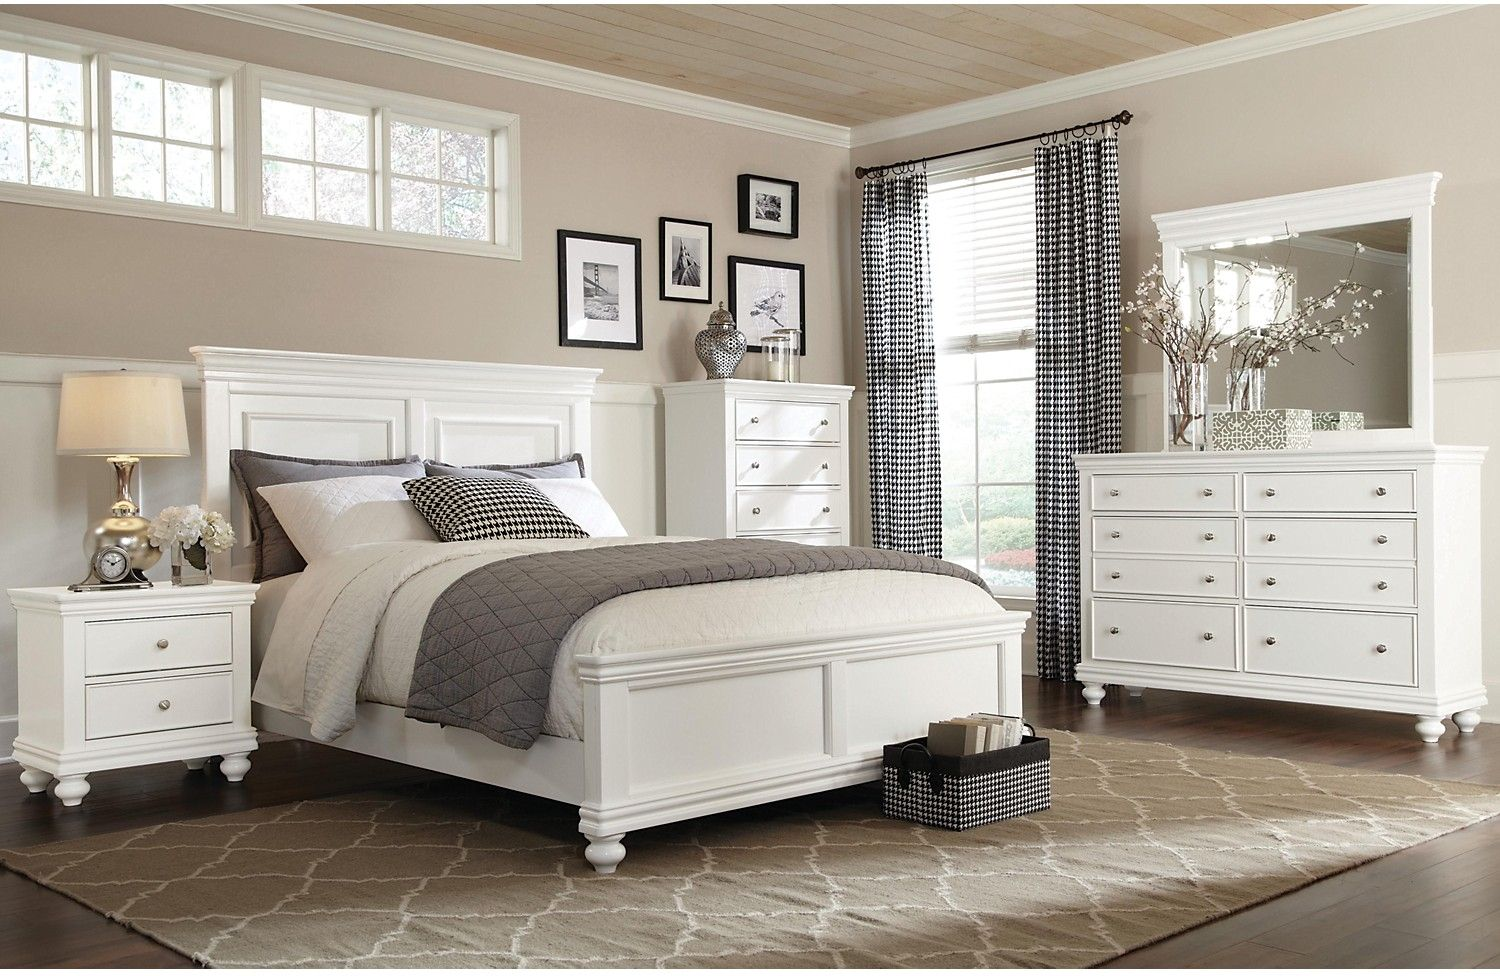 bridgeport 6 piece queen bedroom set white queen bedroom sets queen bedroom and bedrooms. Black Bedroom Furniture Sets. Home Design Ideas